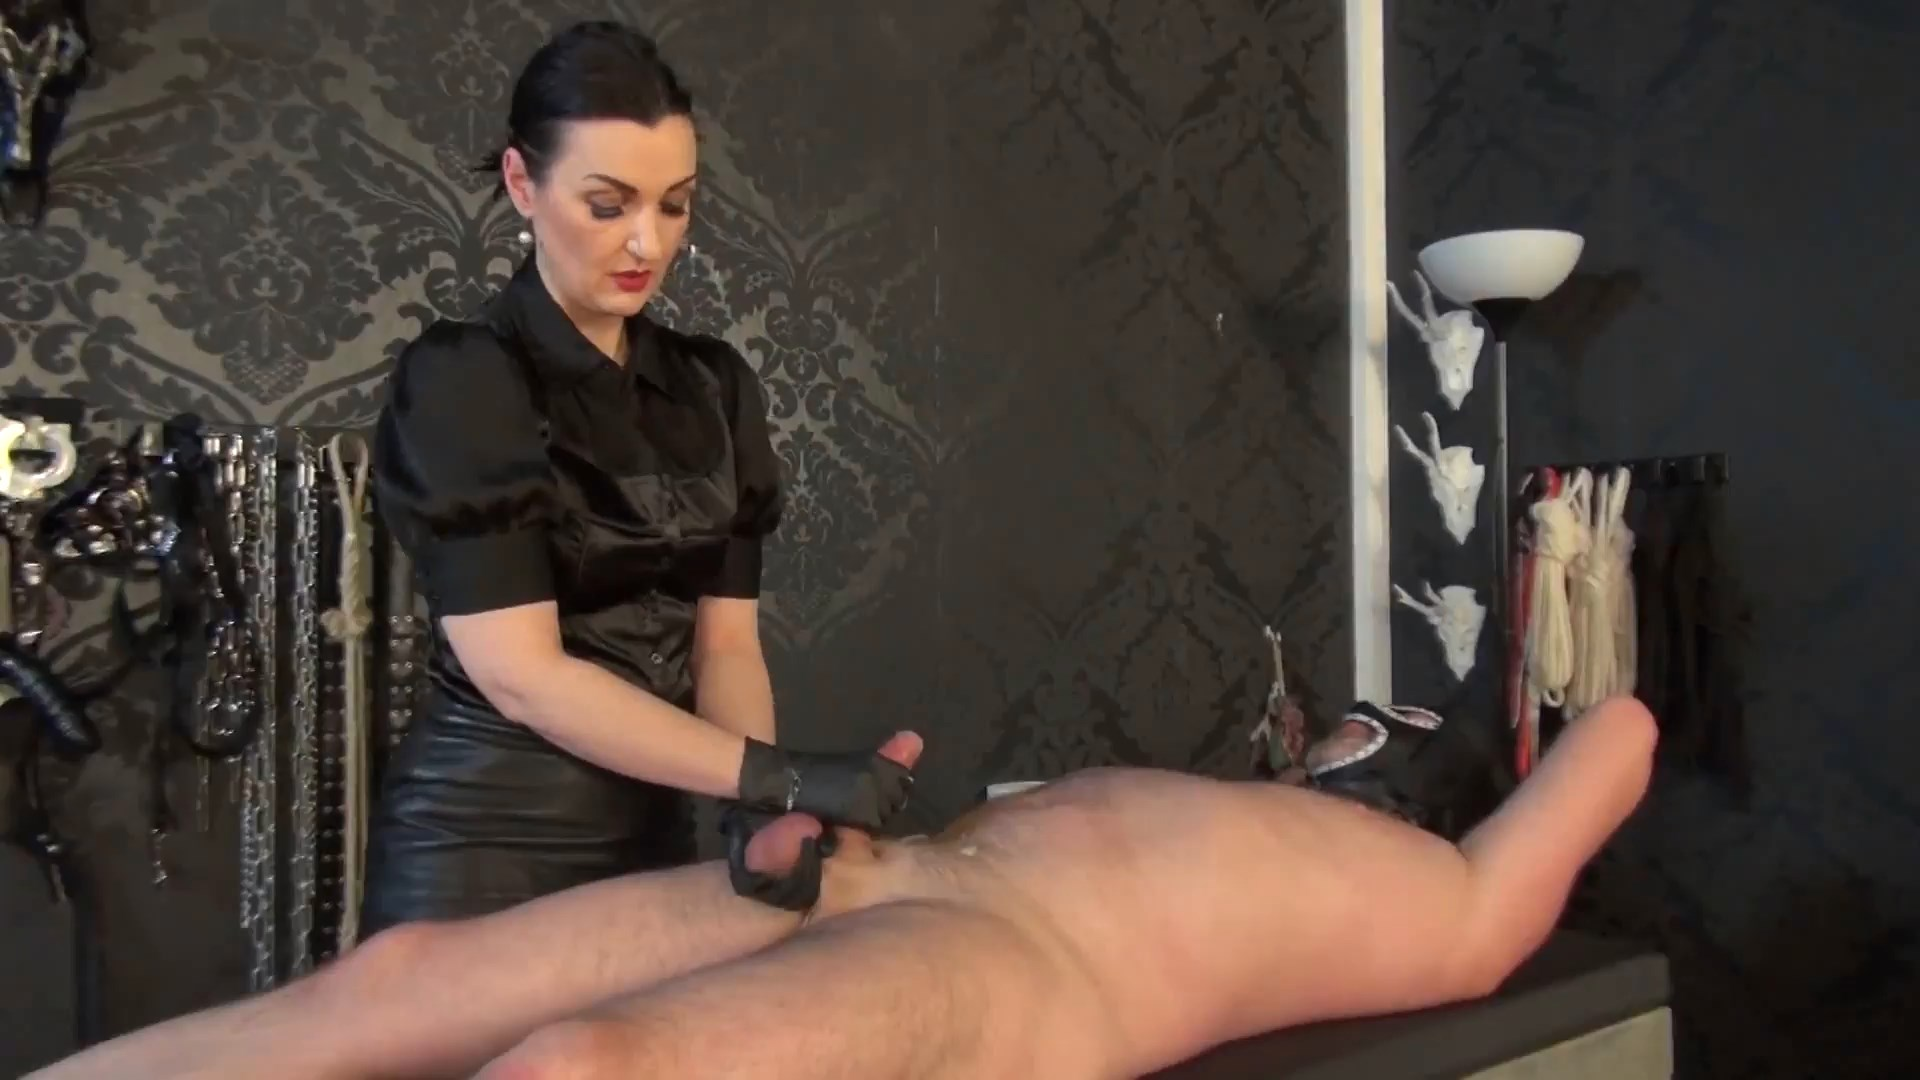 Cbt Game And Handjob With Forced Orgasm - LADY VICTORIA VALENTE - FULL HD/1080p/MP4